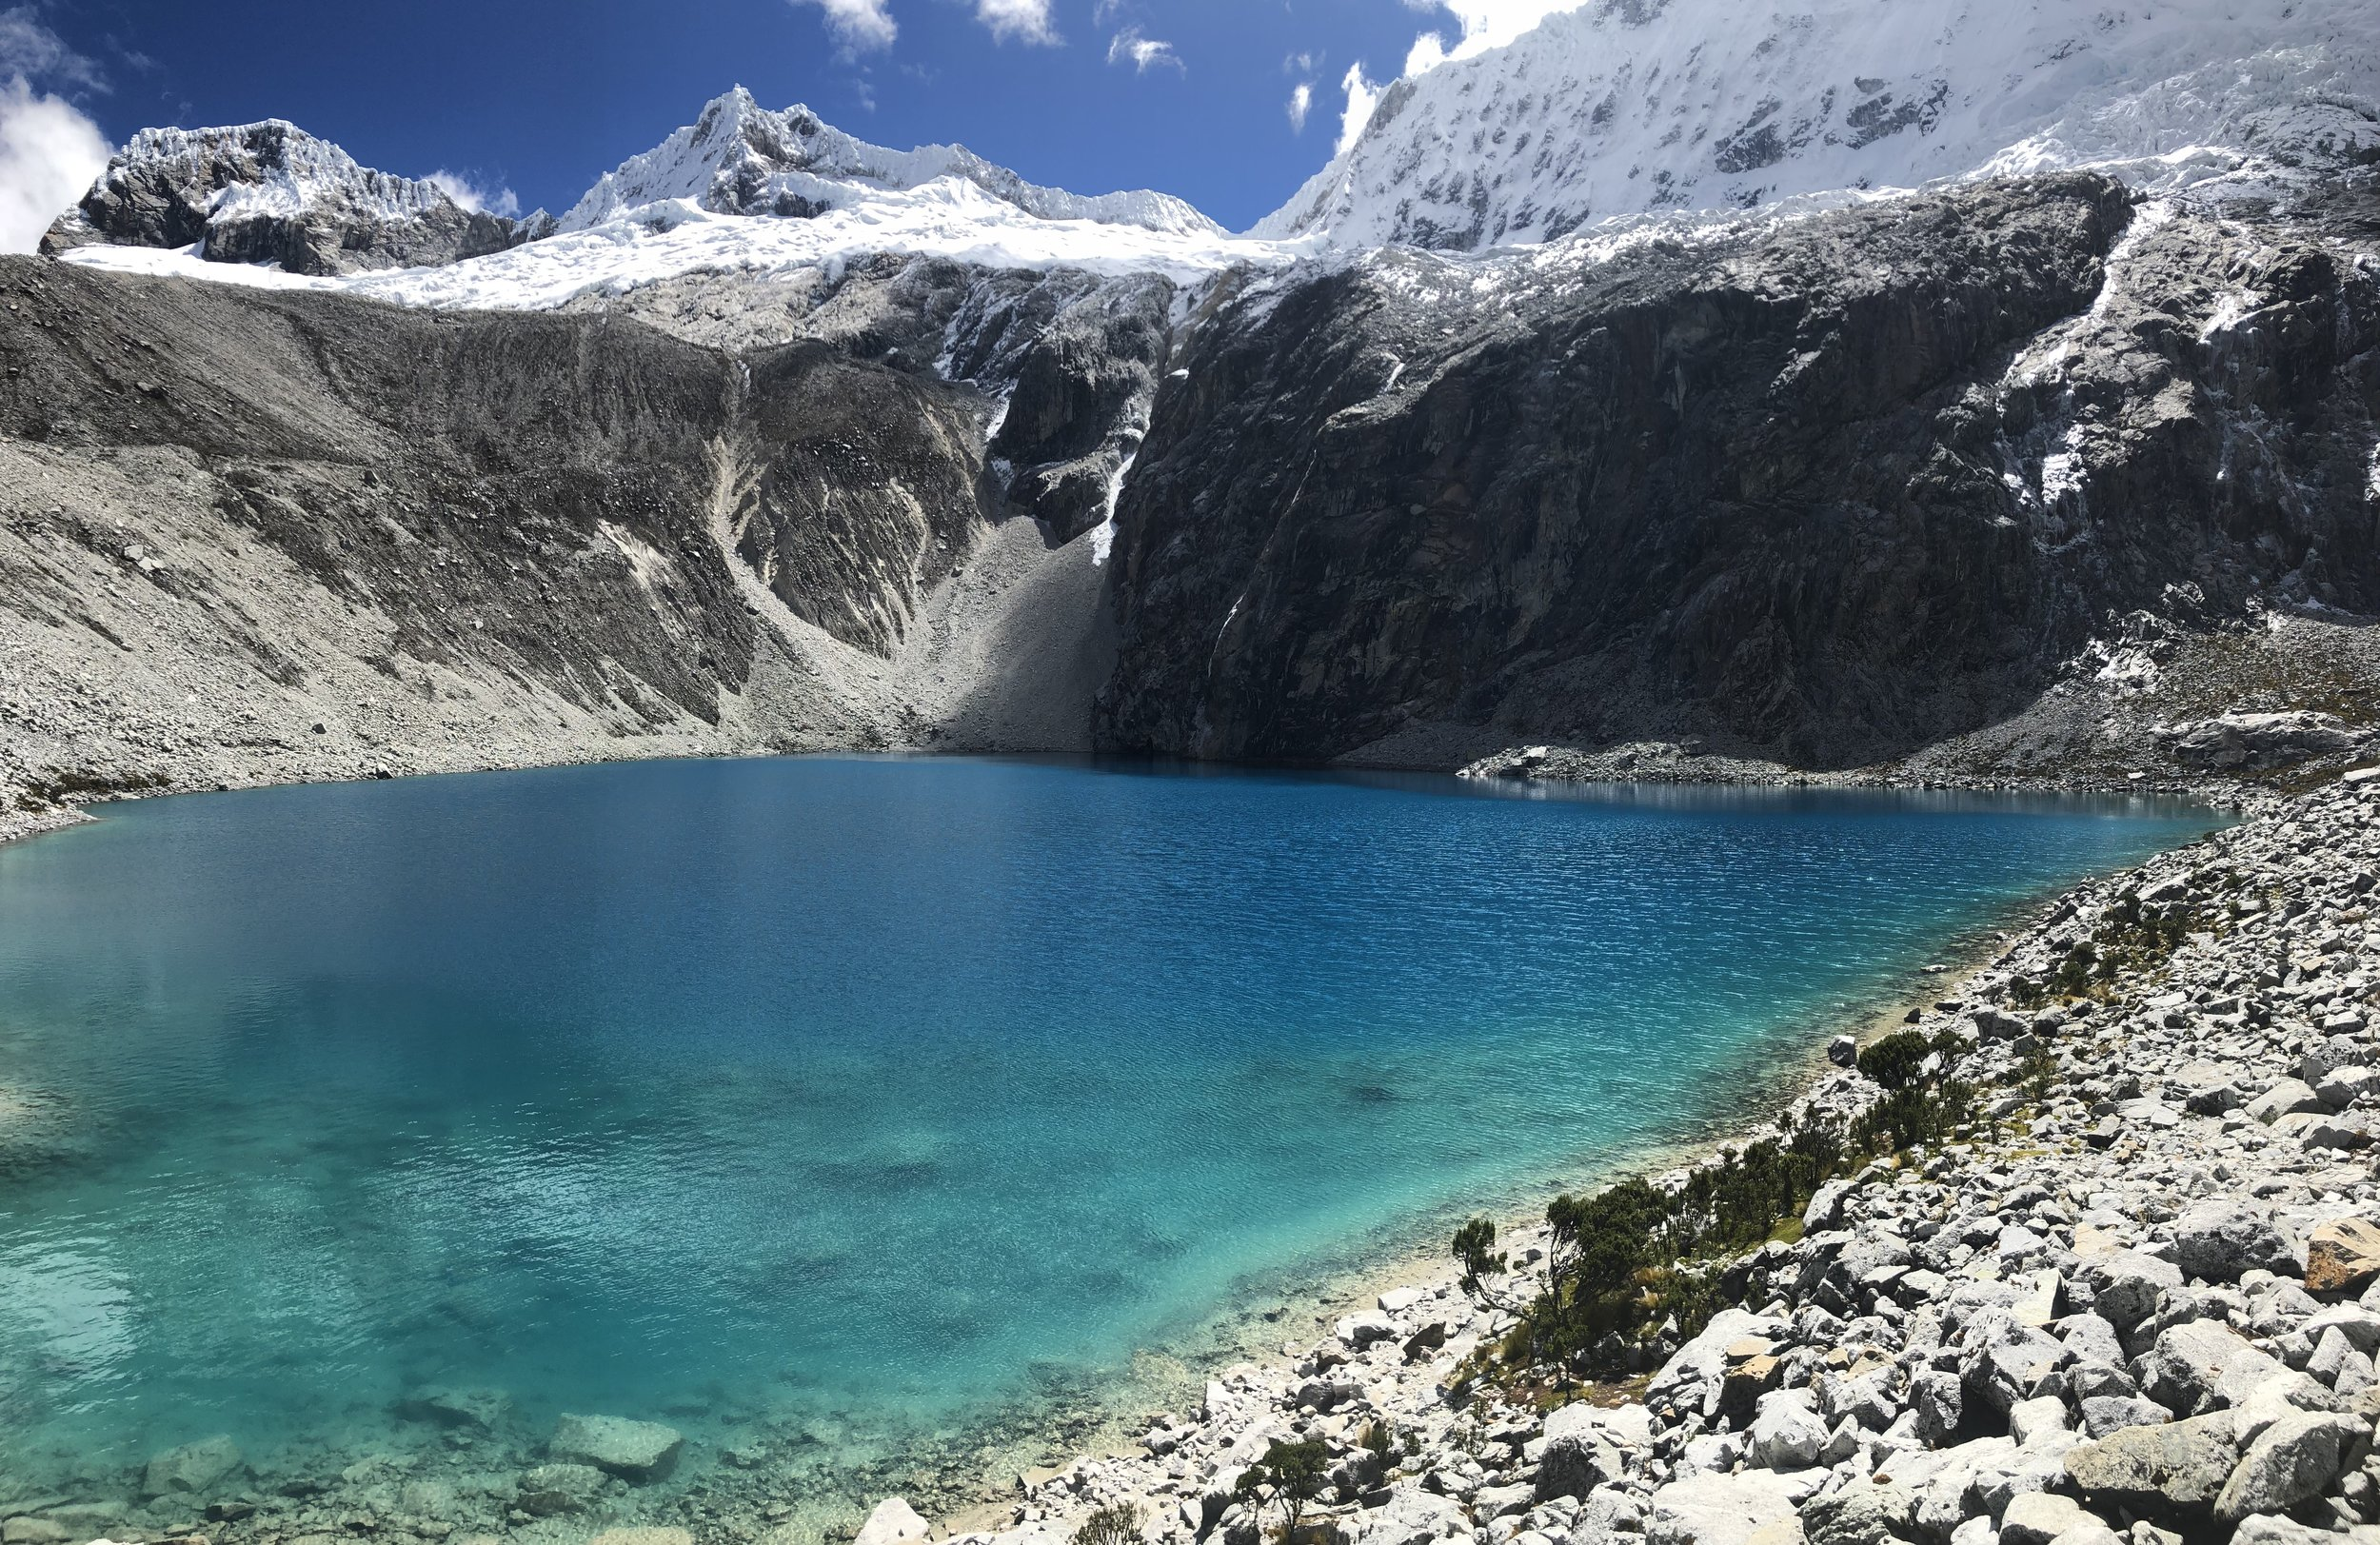 Laguna 69 sits at an elevation of about 14k feet.